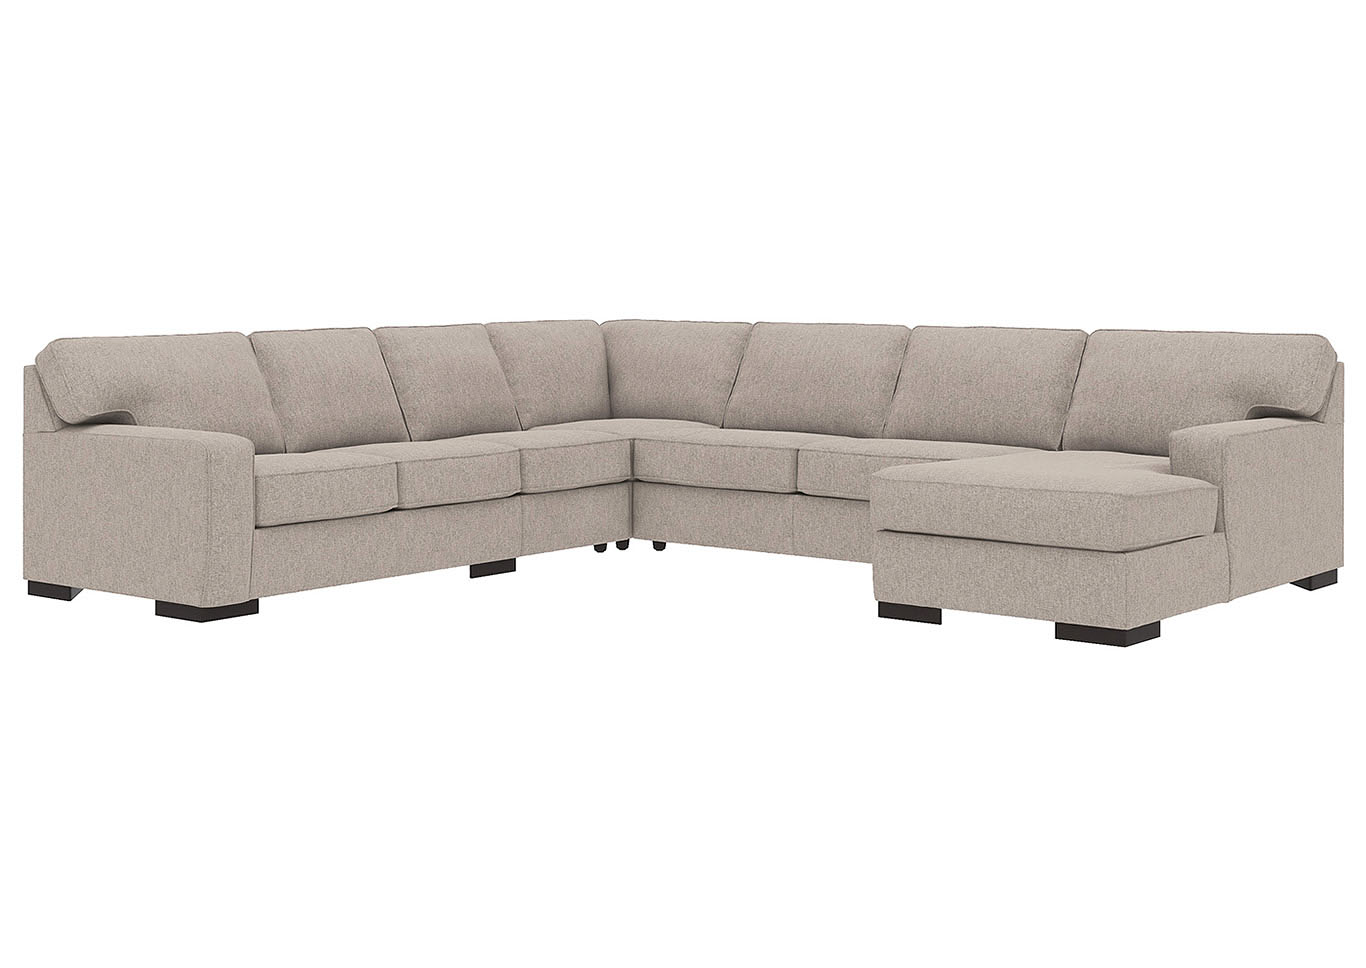 Ashlor Nuvella Slate RAF 5 Piece Chaise Sectional,Ashley